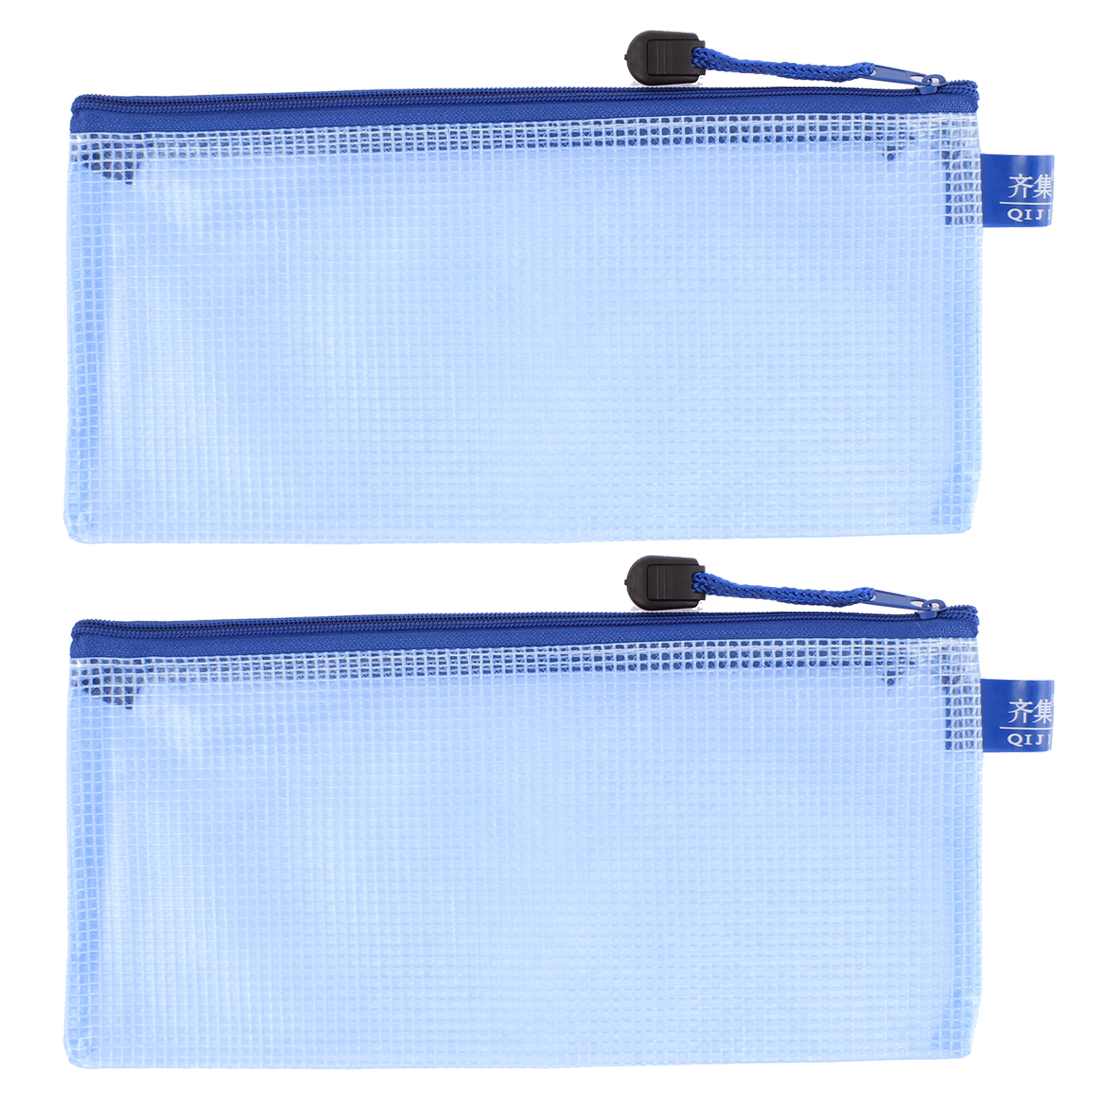 Zipper Closure Blue Nylon Mesh A5 Document File Bags Holder Organizer 2pcs